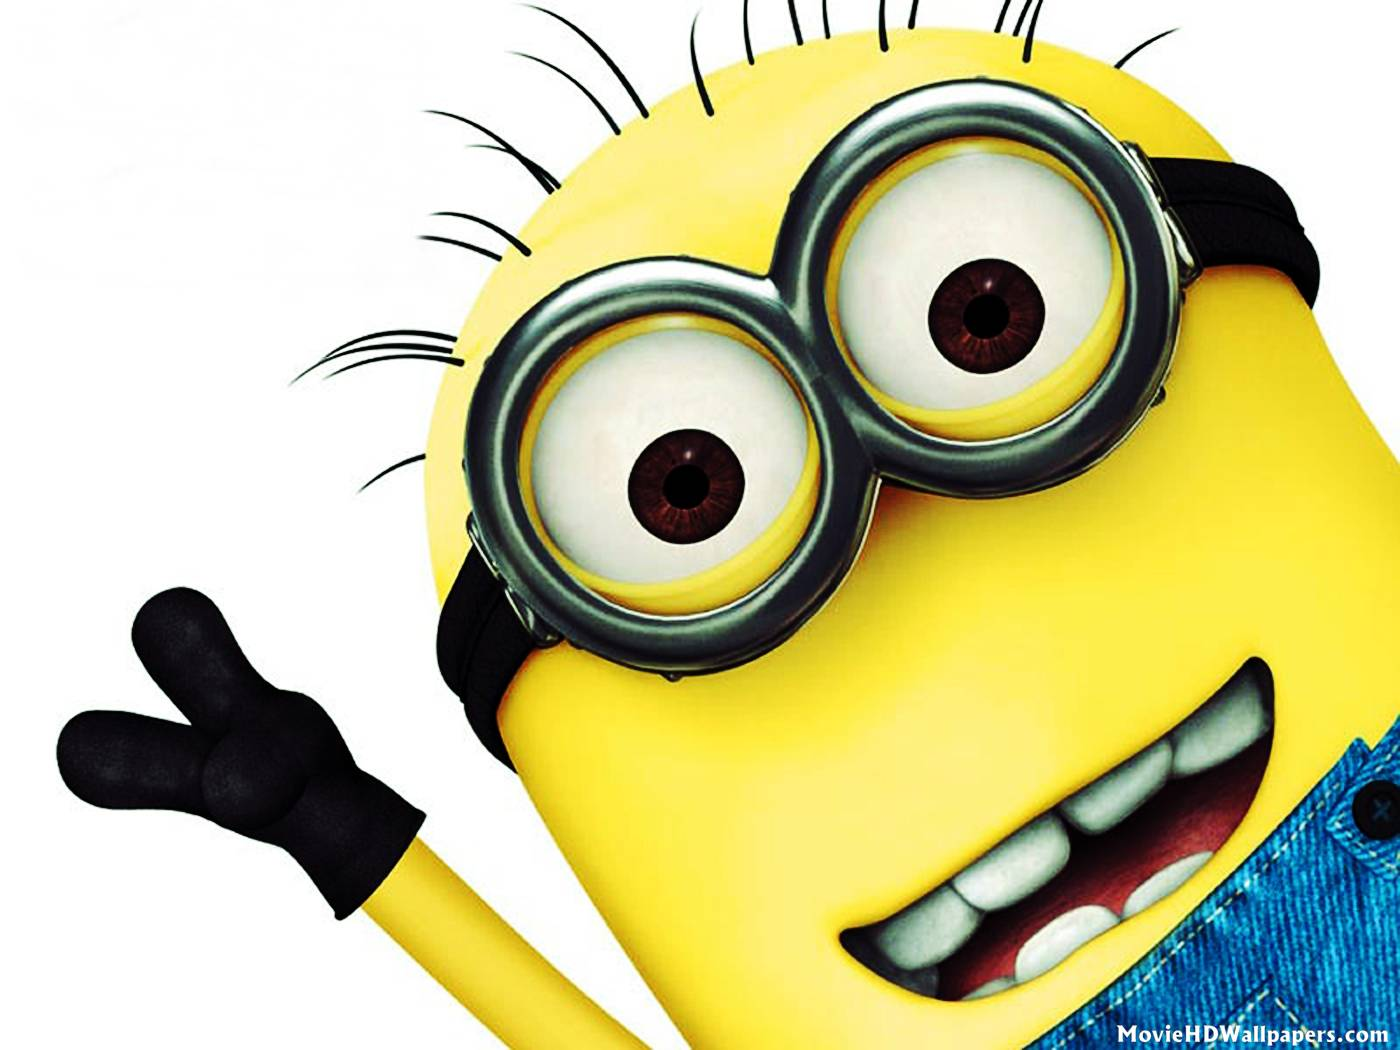 Despicable-Me-HD-Backgrounds-×-Minion-Despicable-Me-W-wallpaper-wpc5804086